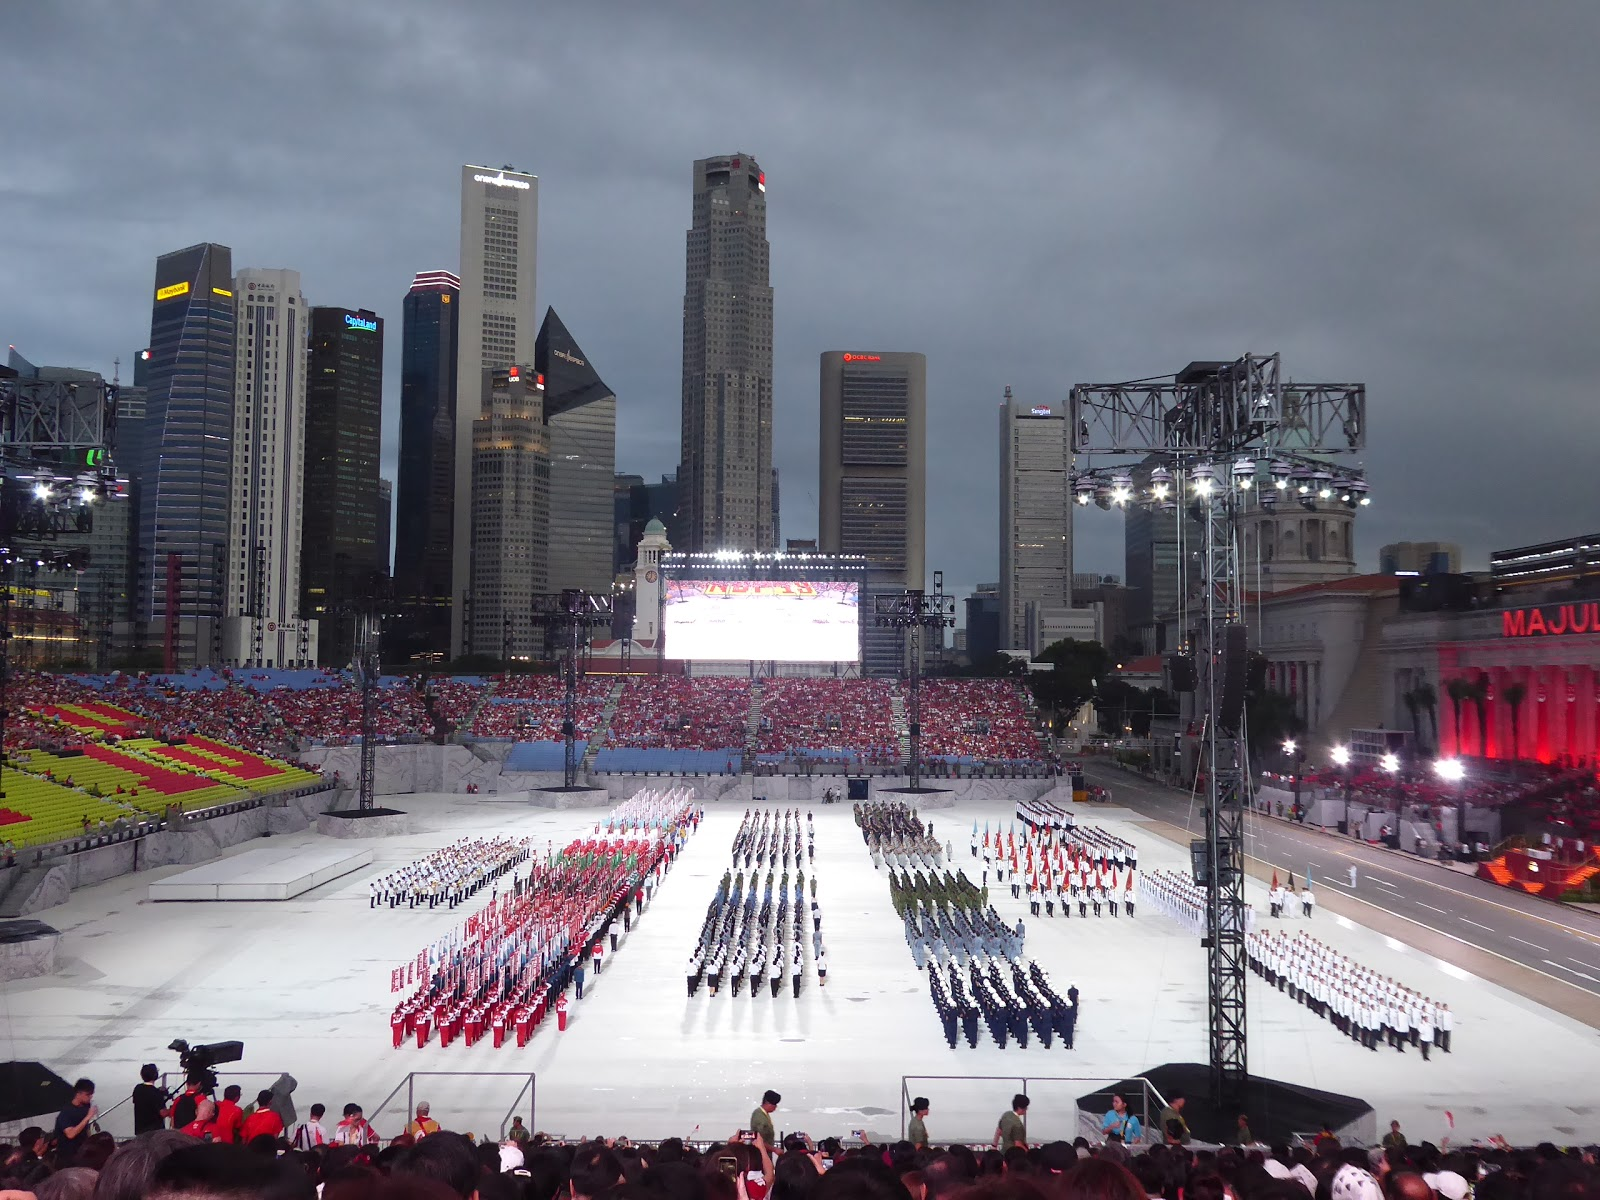 Singapore National Day Parade Rehearsal on 29th June 2019